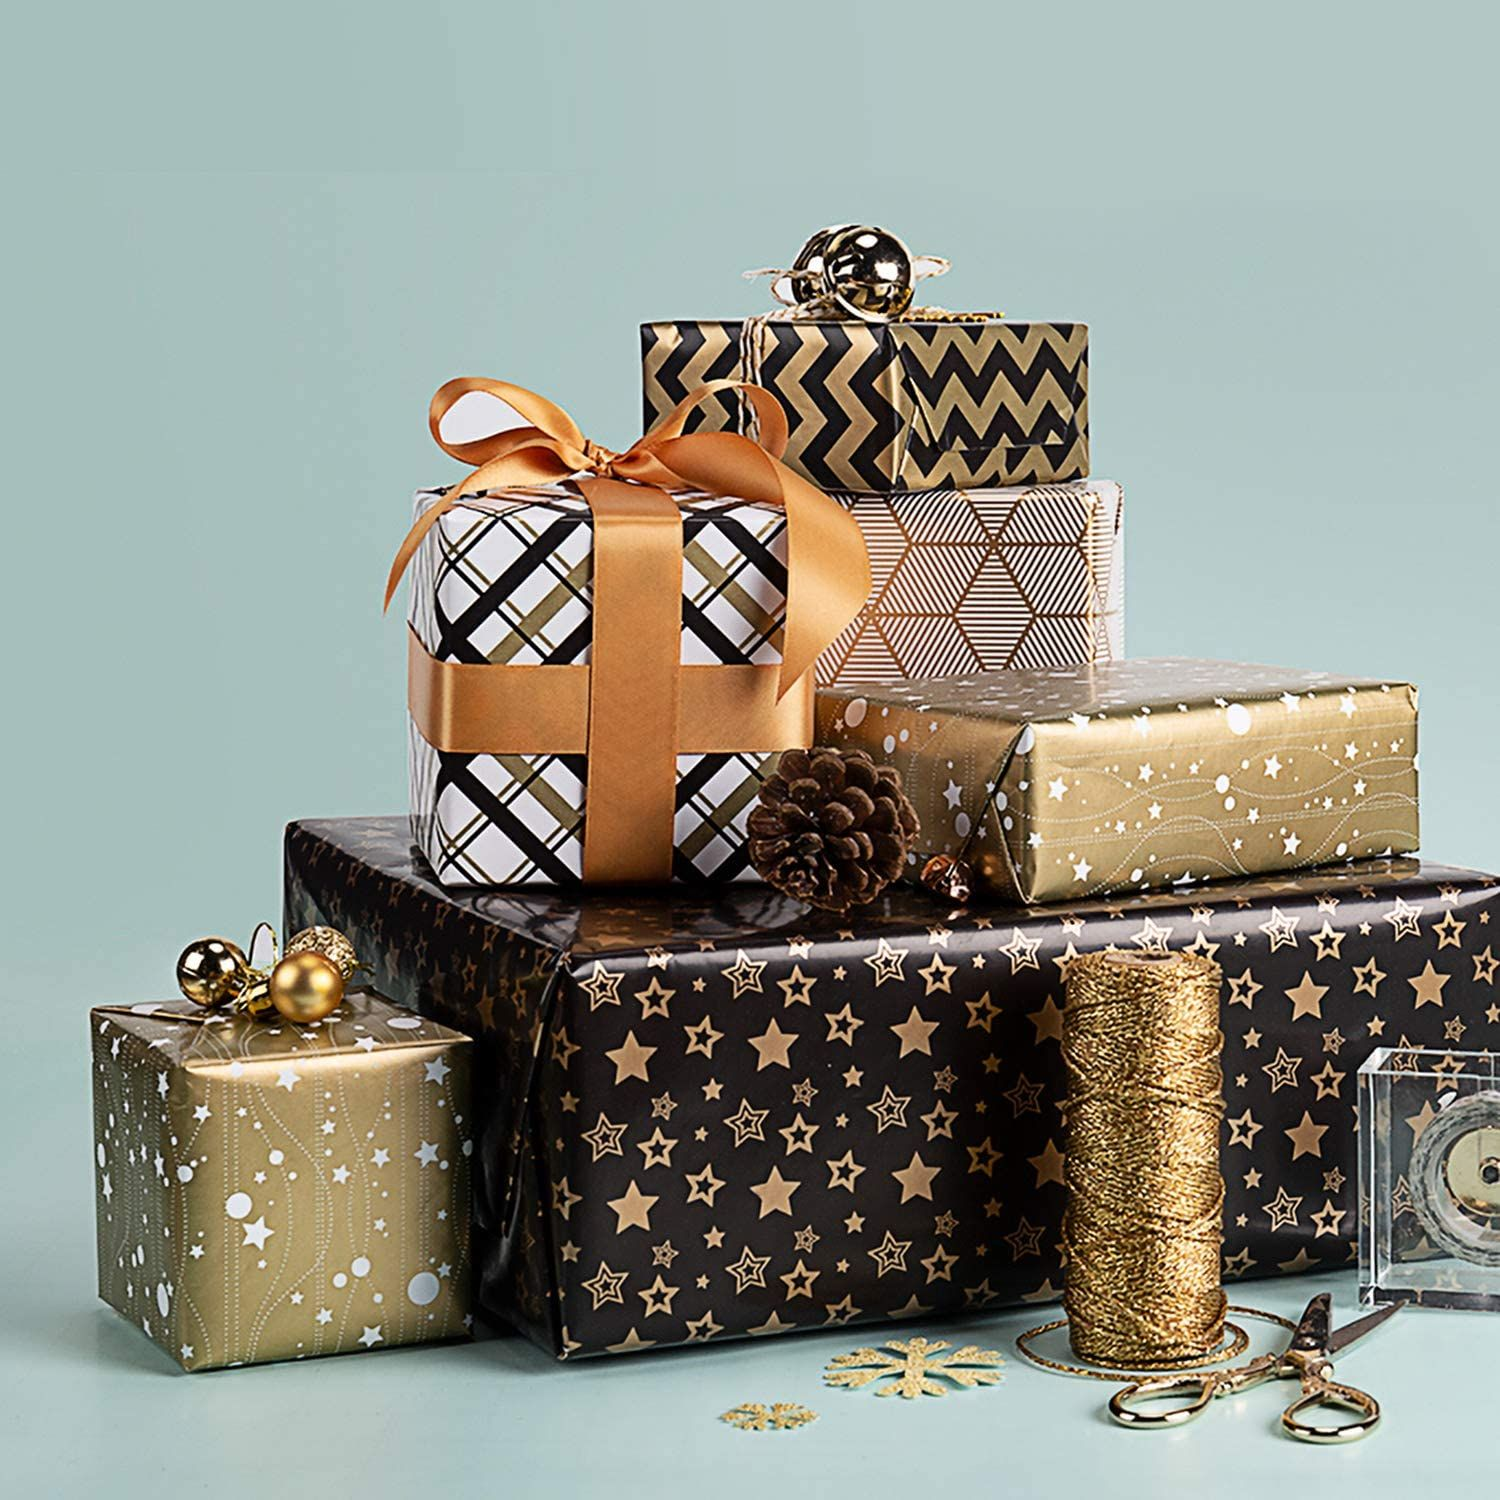 Best Gold Gift Wrap Foil in 2020 Gift wrapping, Gift